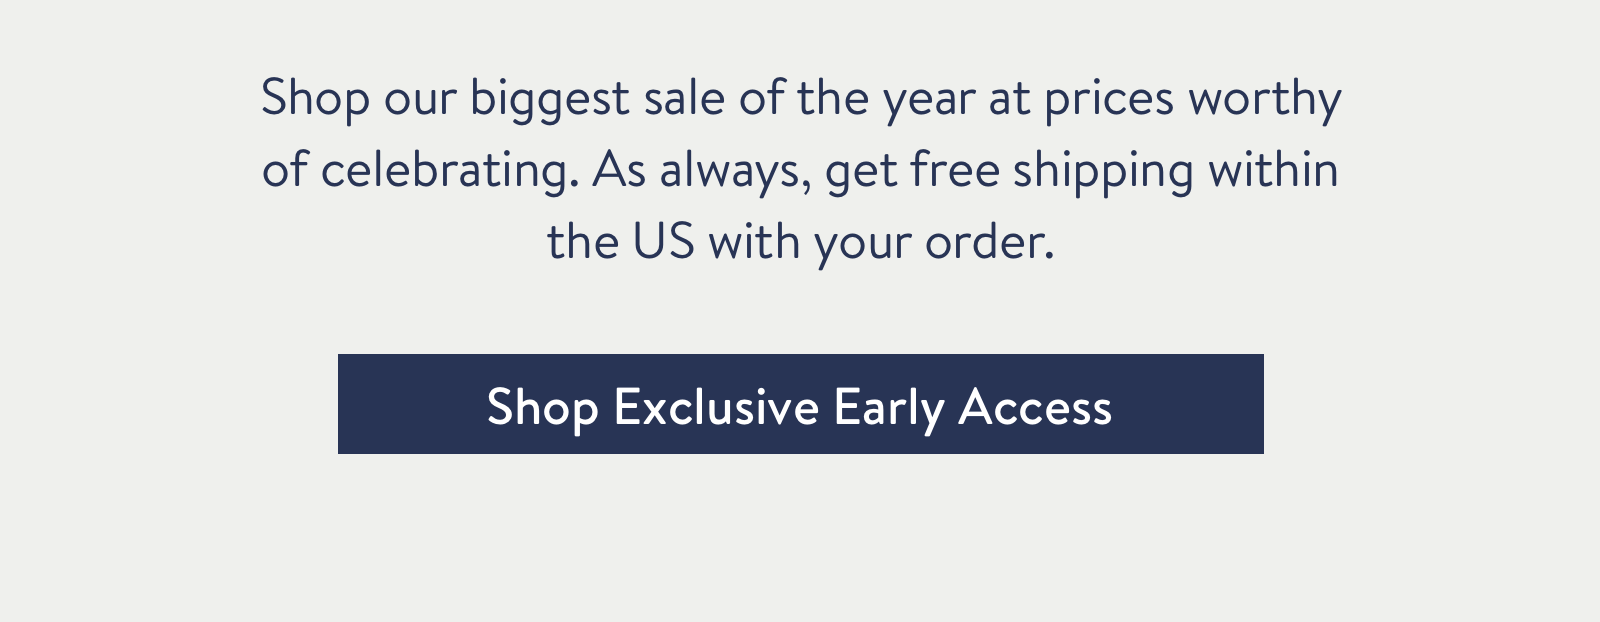 Shop our biggest sale of the year at prices worthy of celebrating. As always, get free shipping within the US with your order.